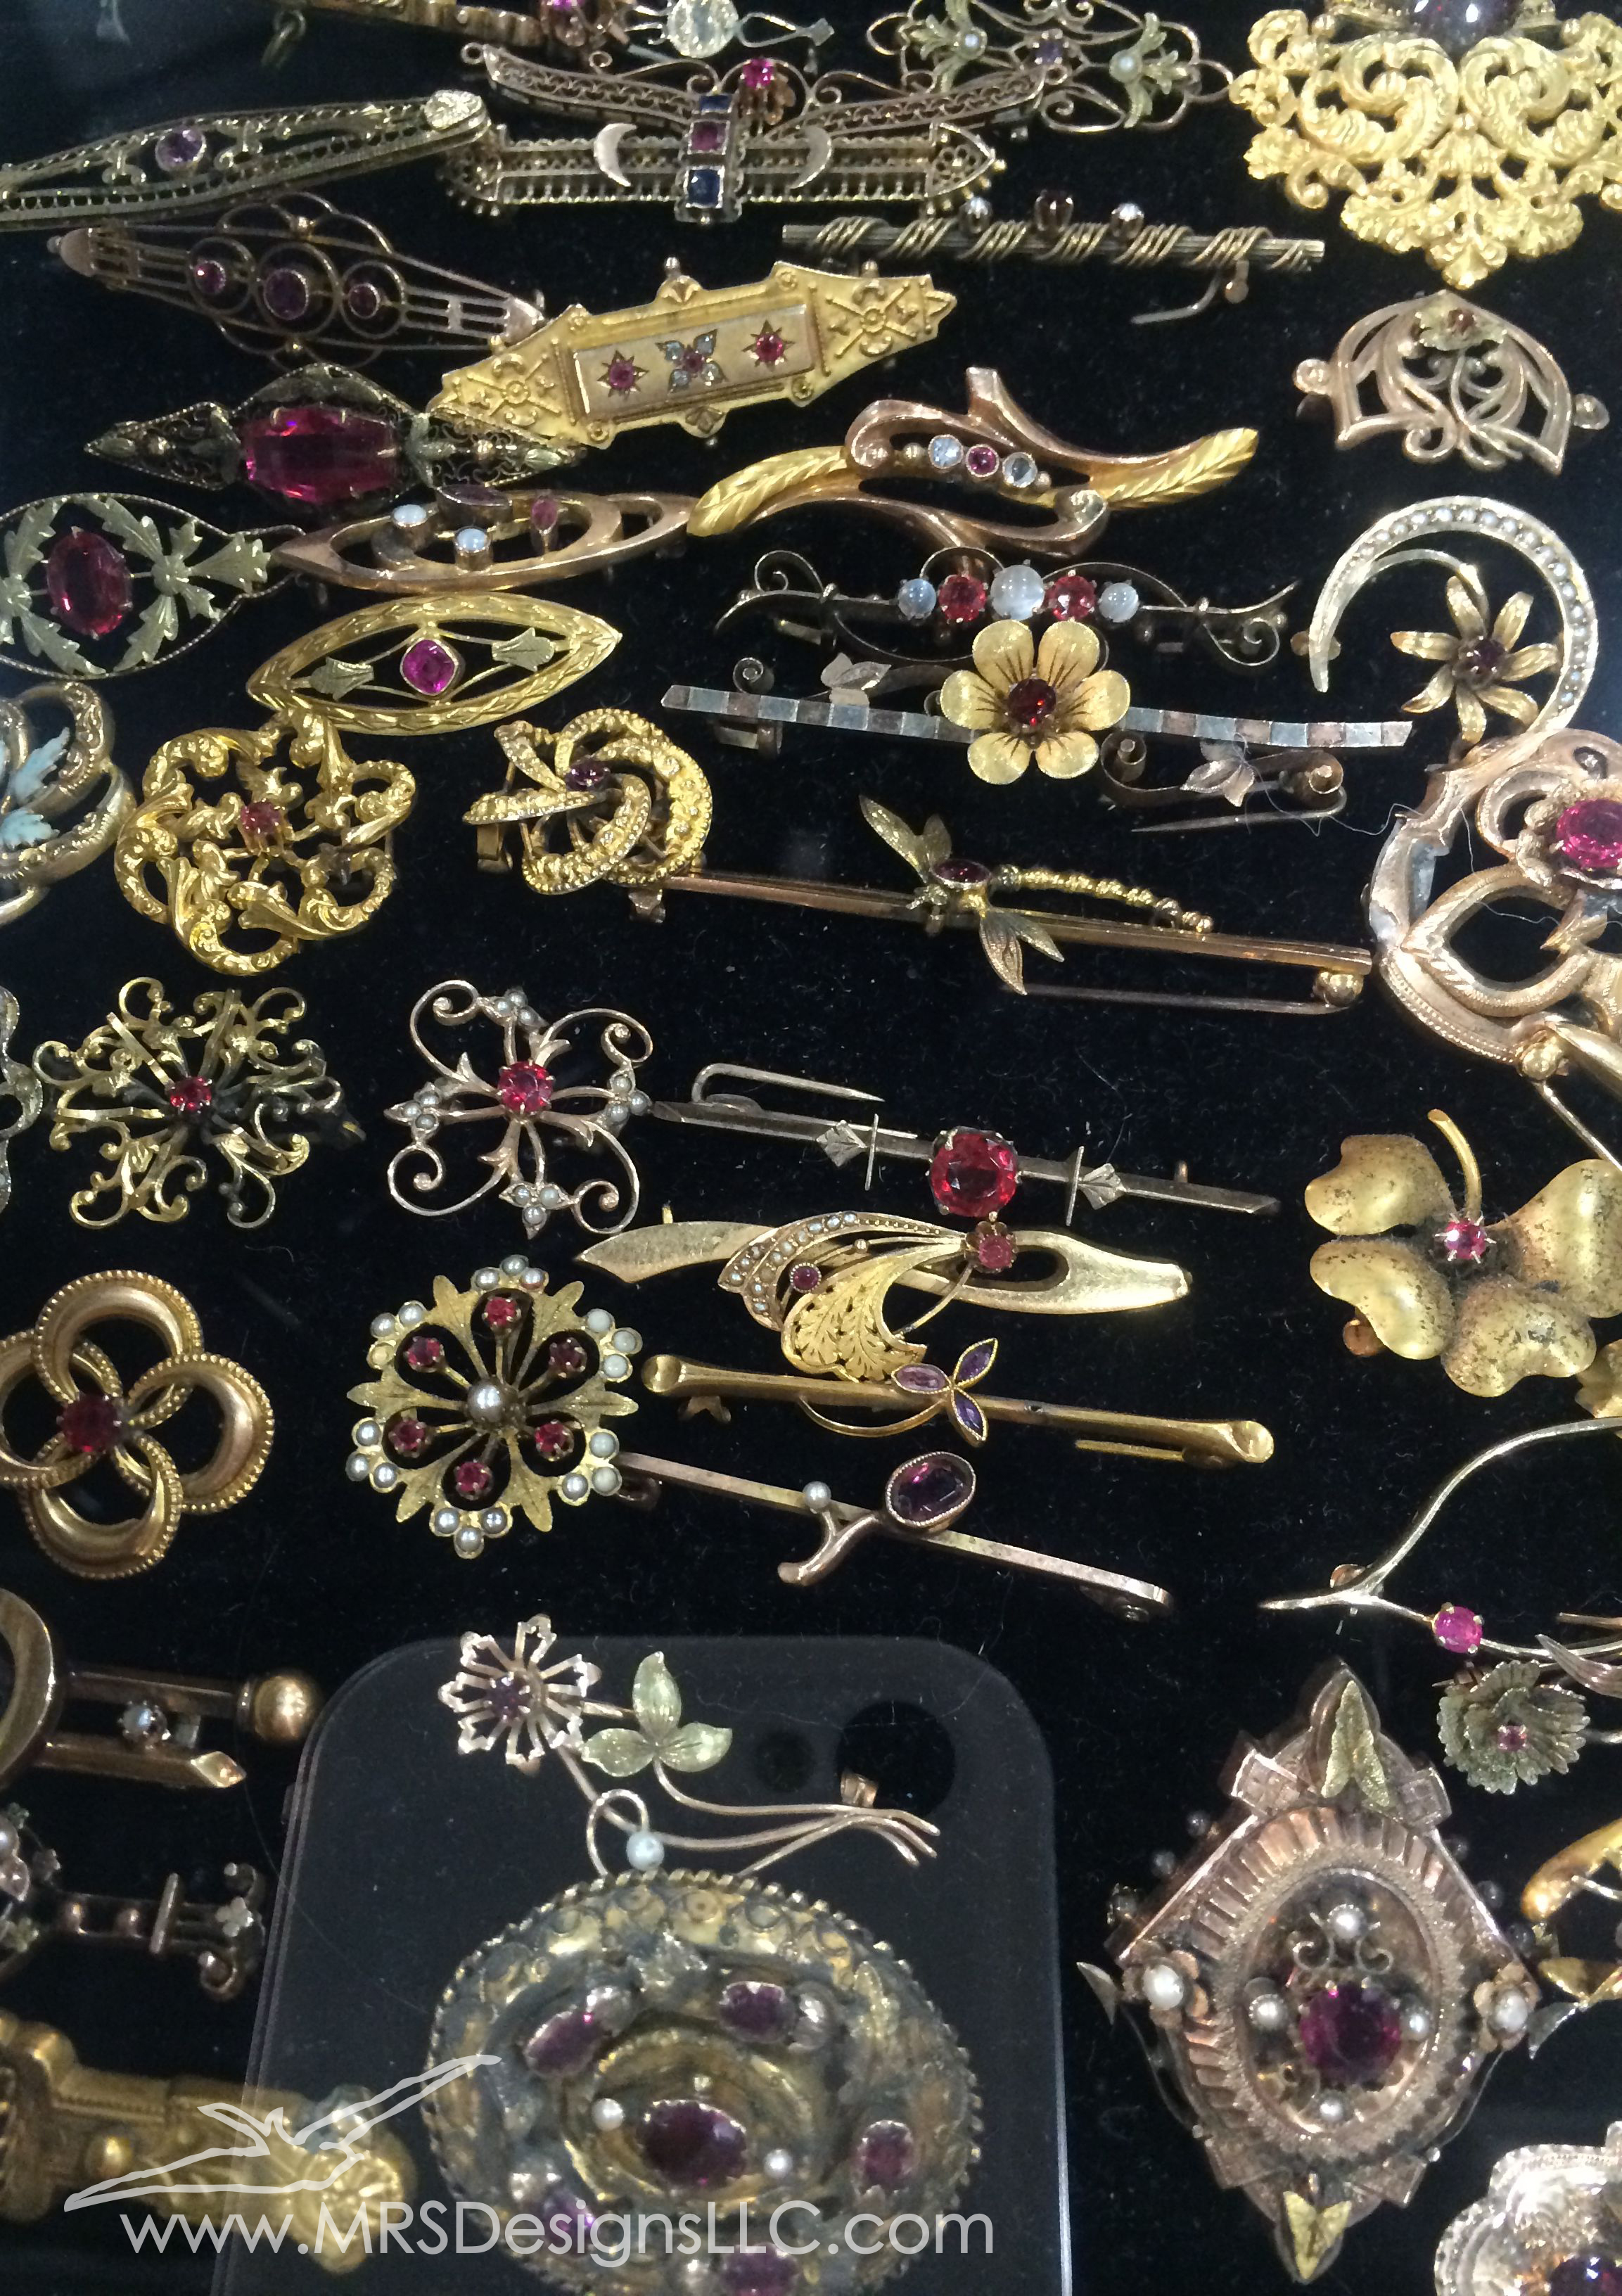 MRS Designs Vintage Straight Pins at Bead and Button Show.jpg